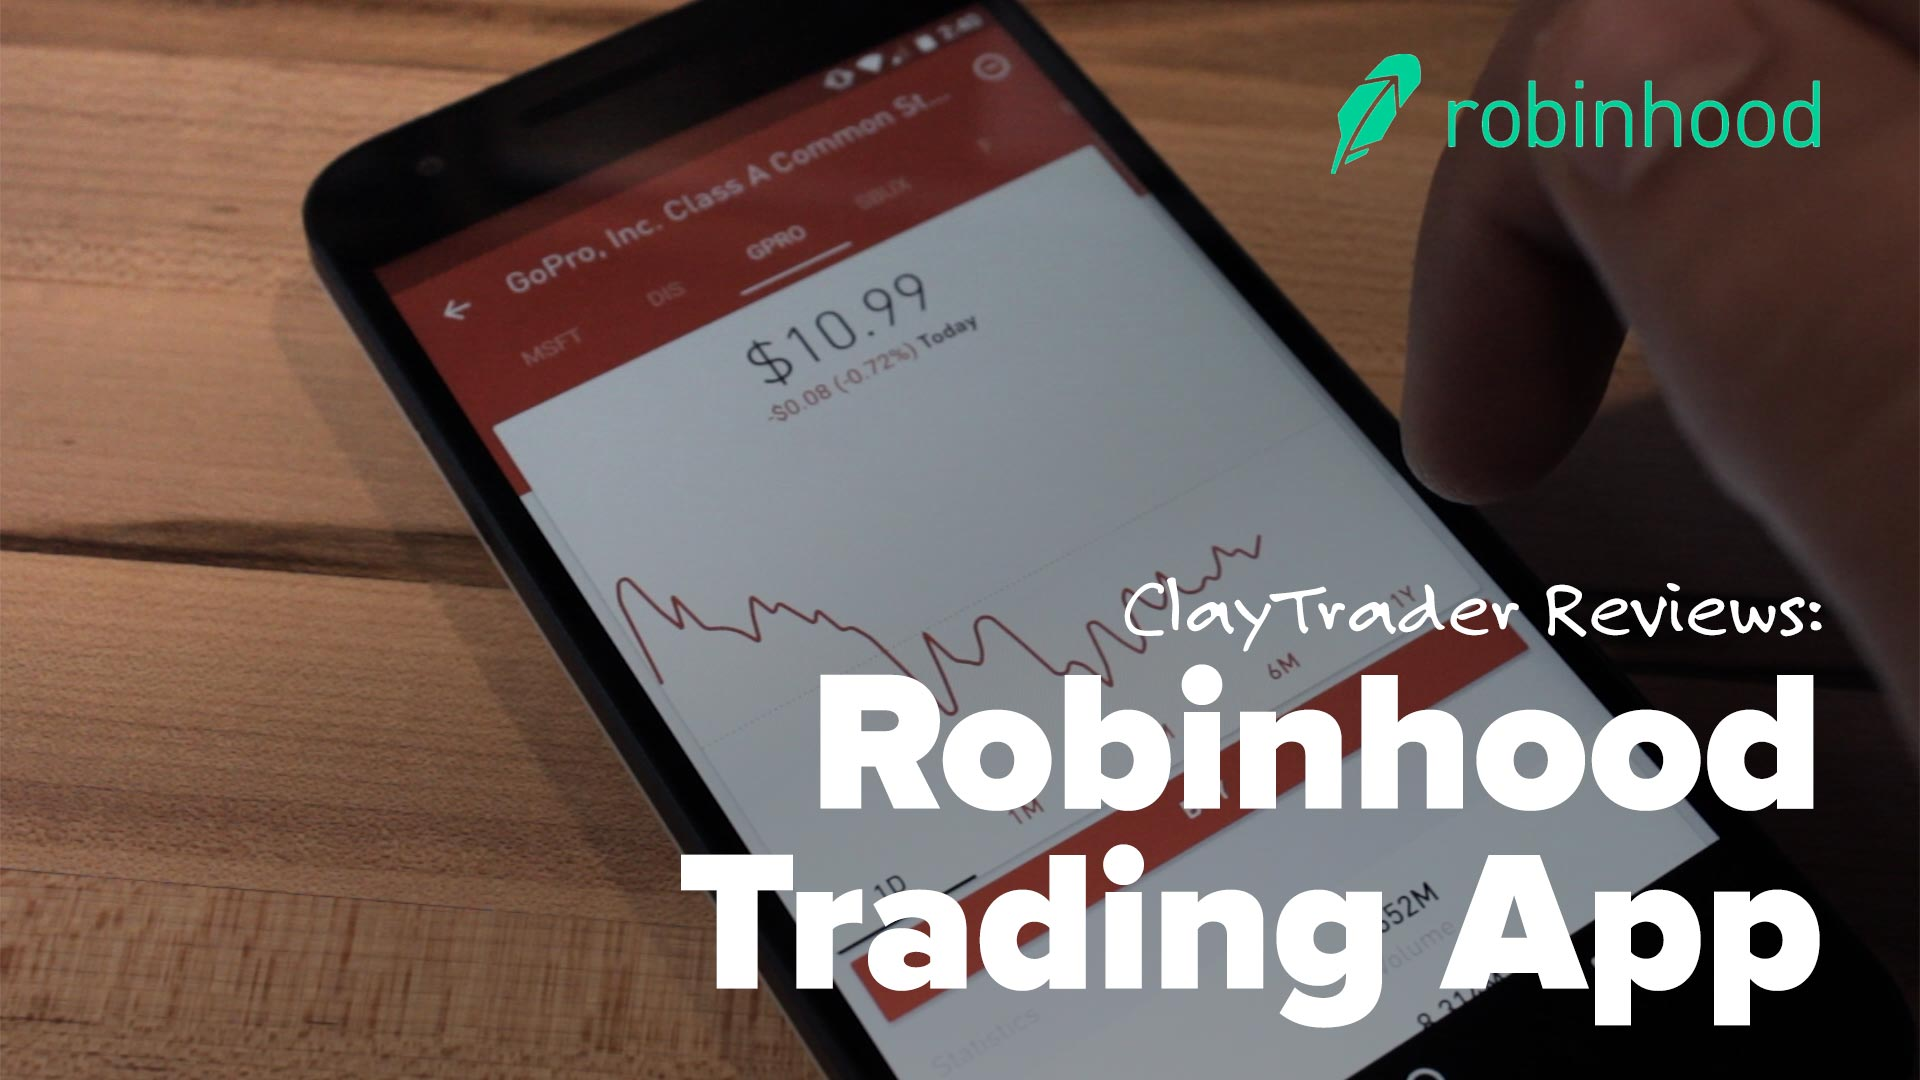 Robinhood Walkthrough